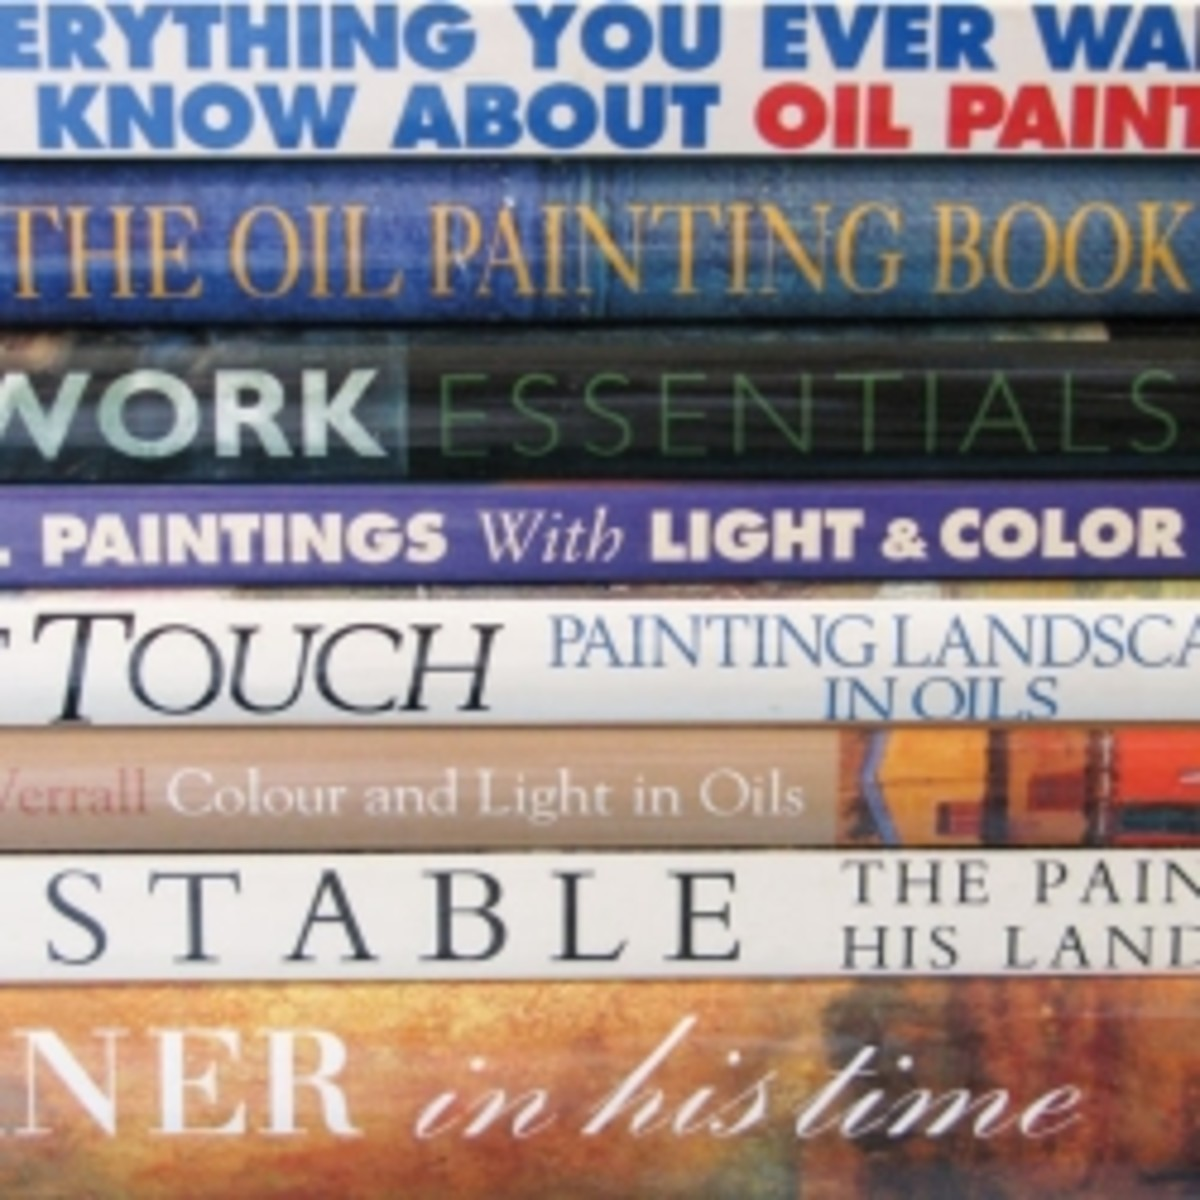 some of my books about oil painting